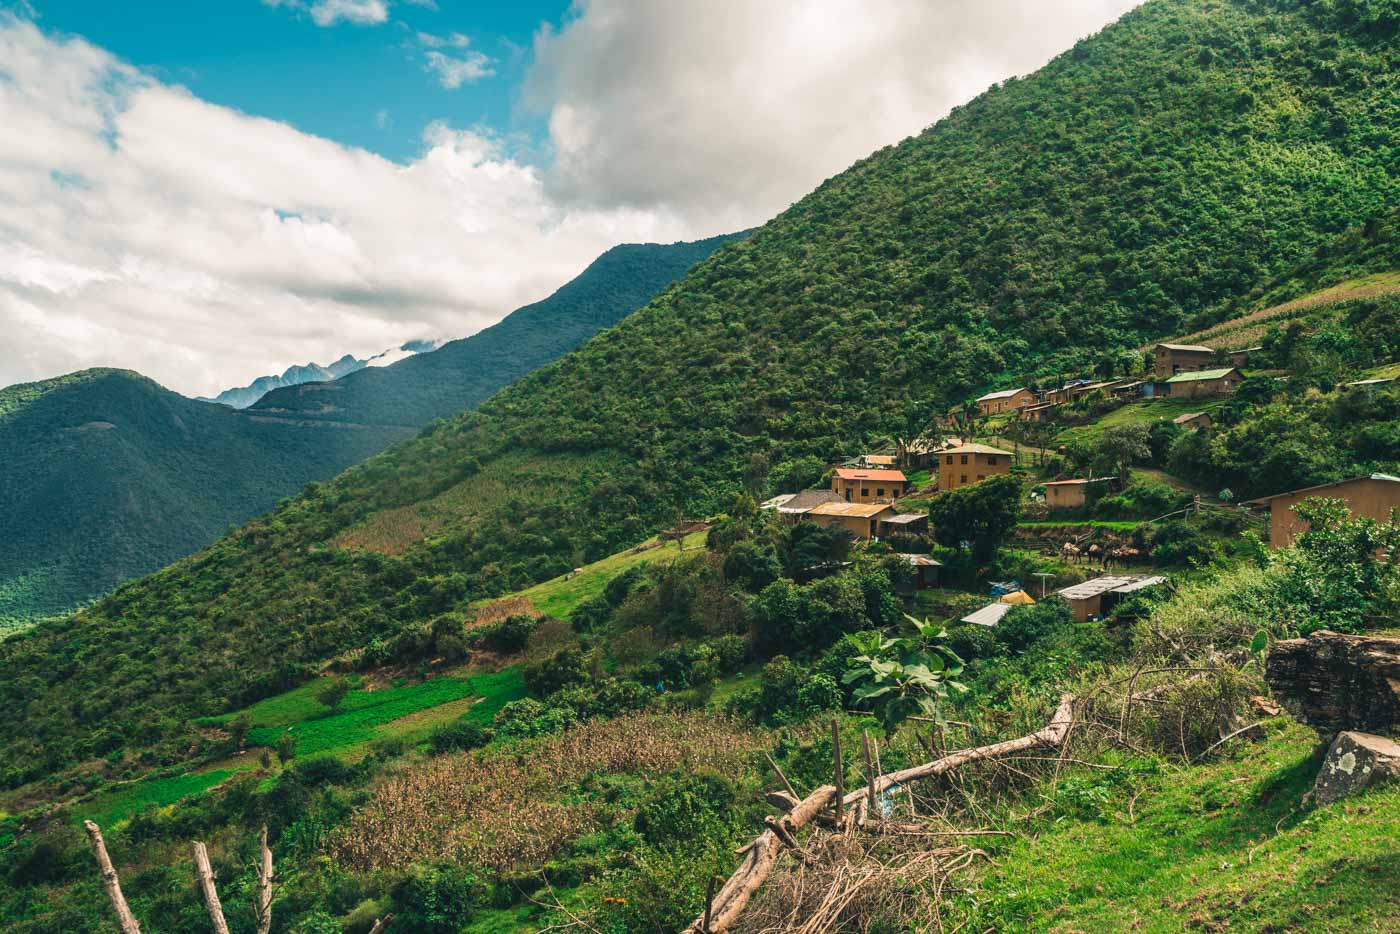 Village of Marampata en route to Choquequirao, Cusco Region, Peru